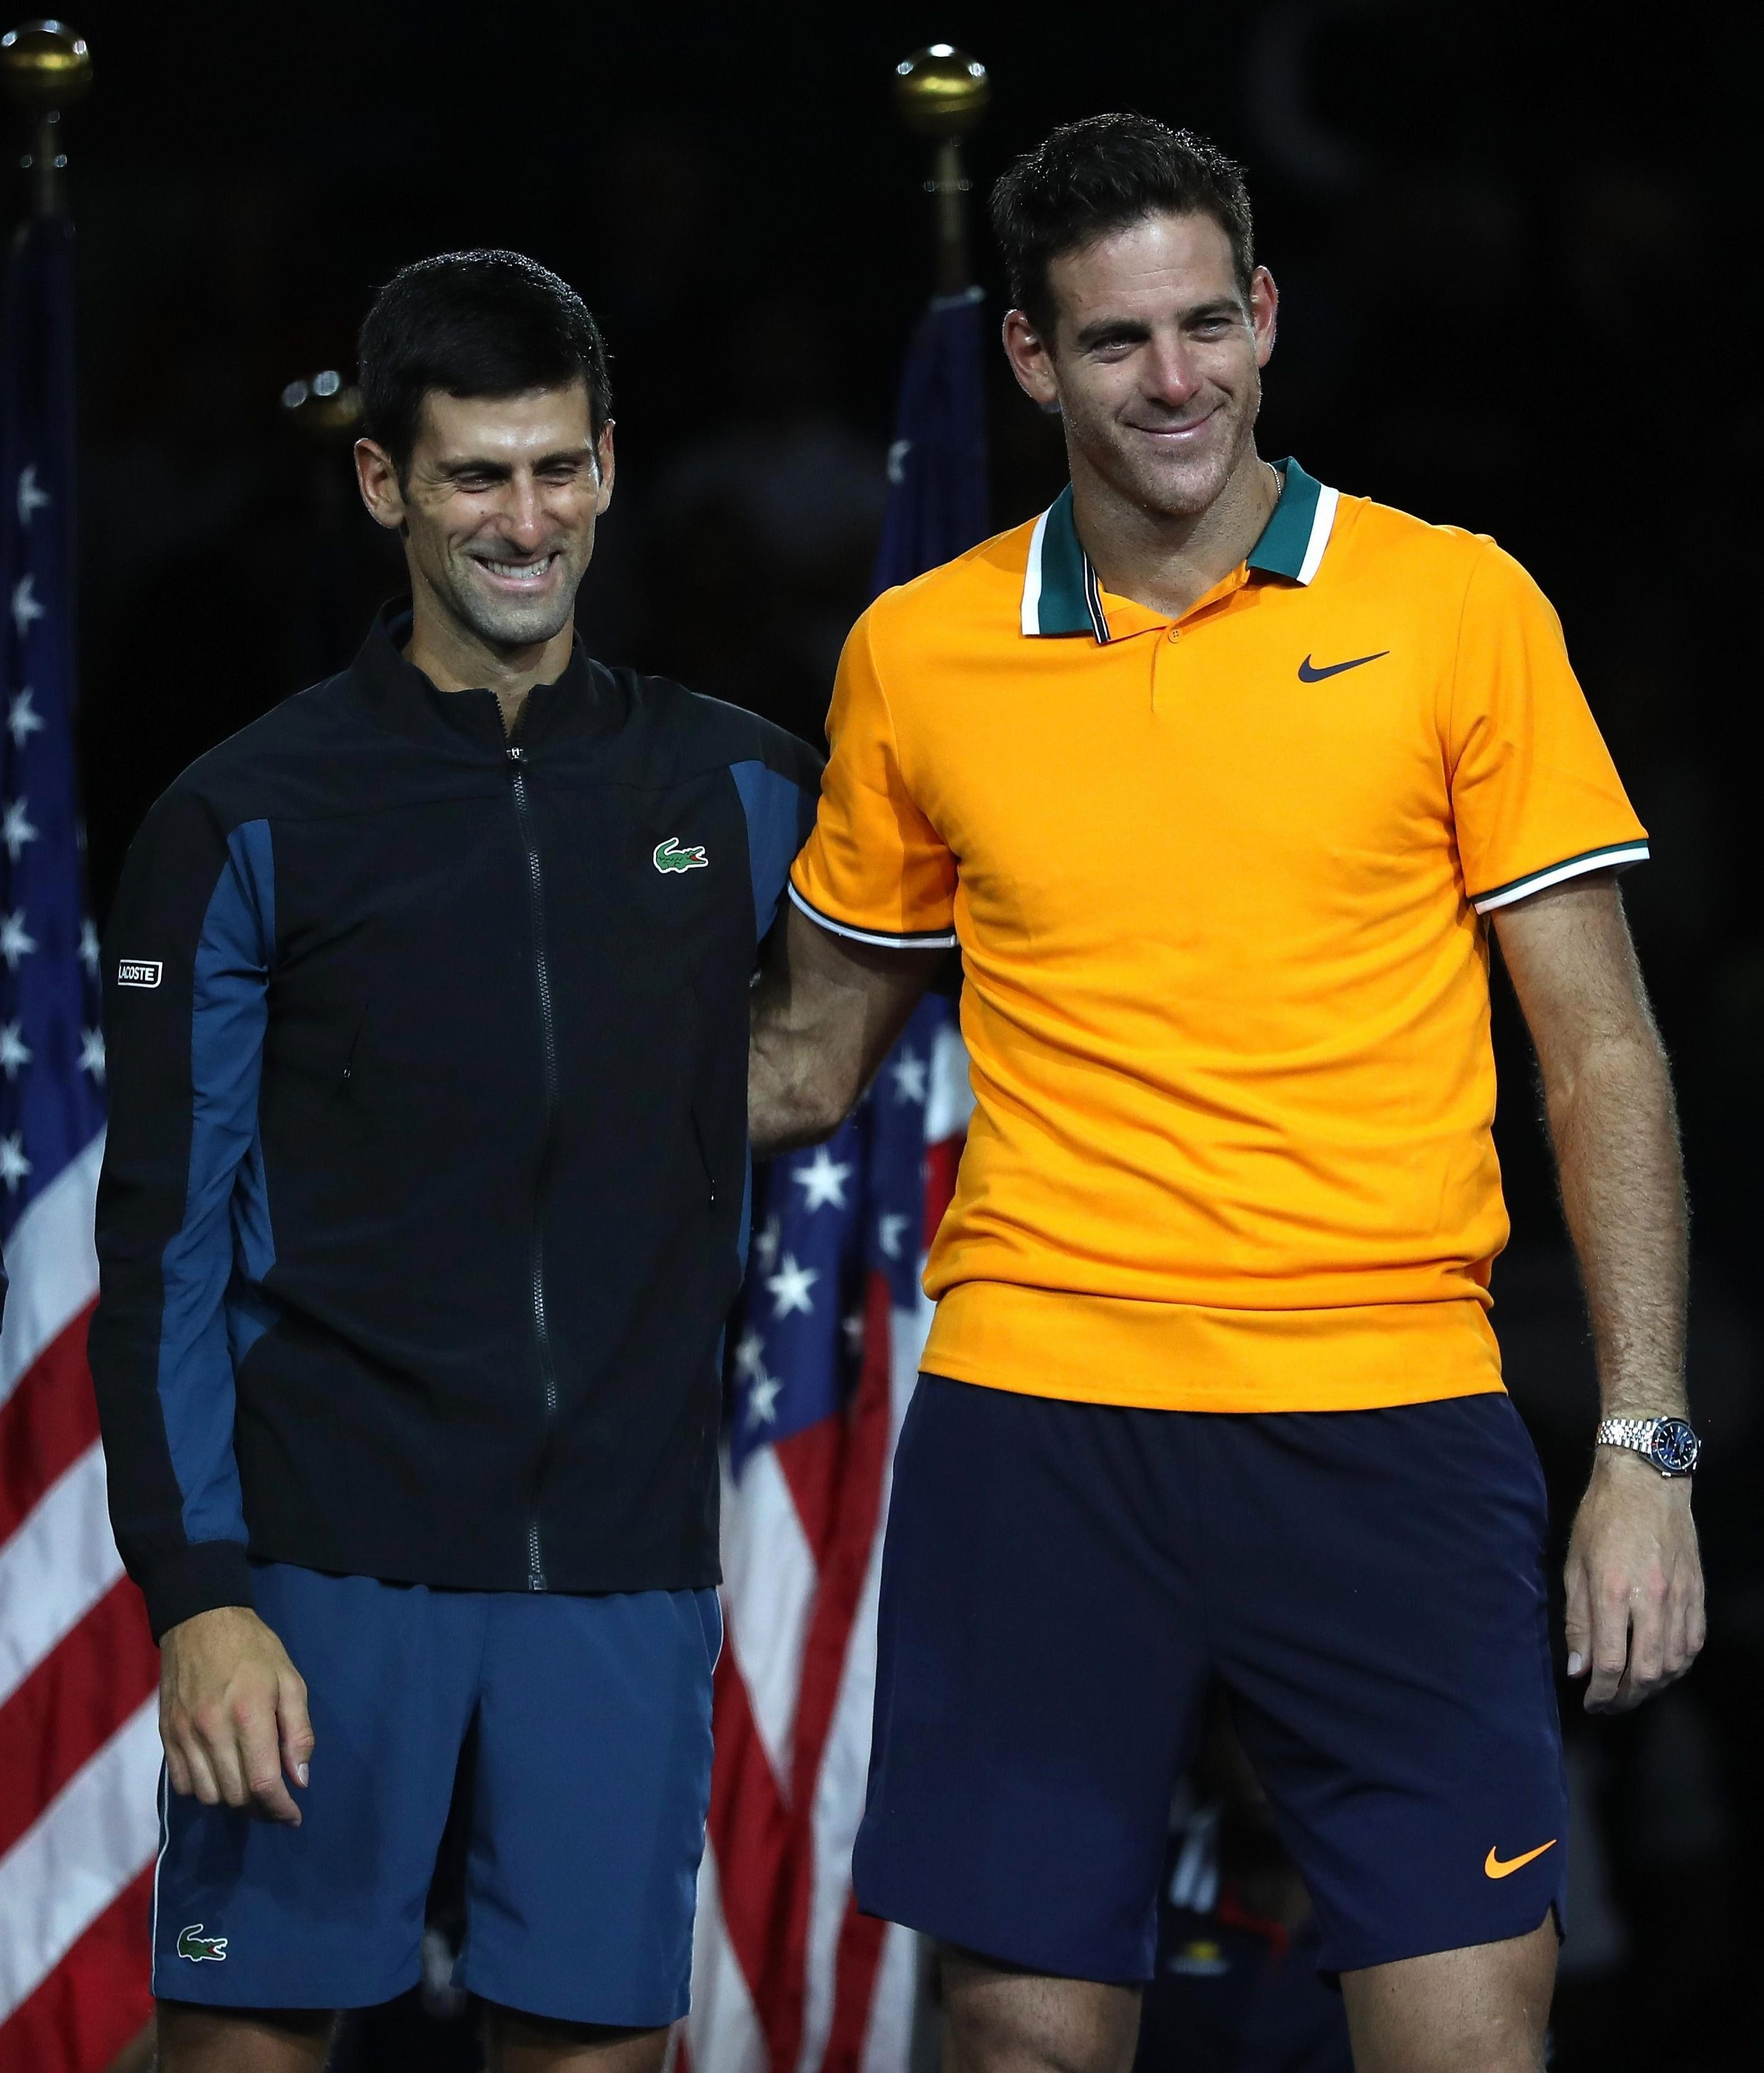 Novak Djokovic and Juan Martin del Potro are able to smile together after hours battling on the court